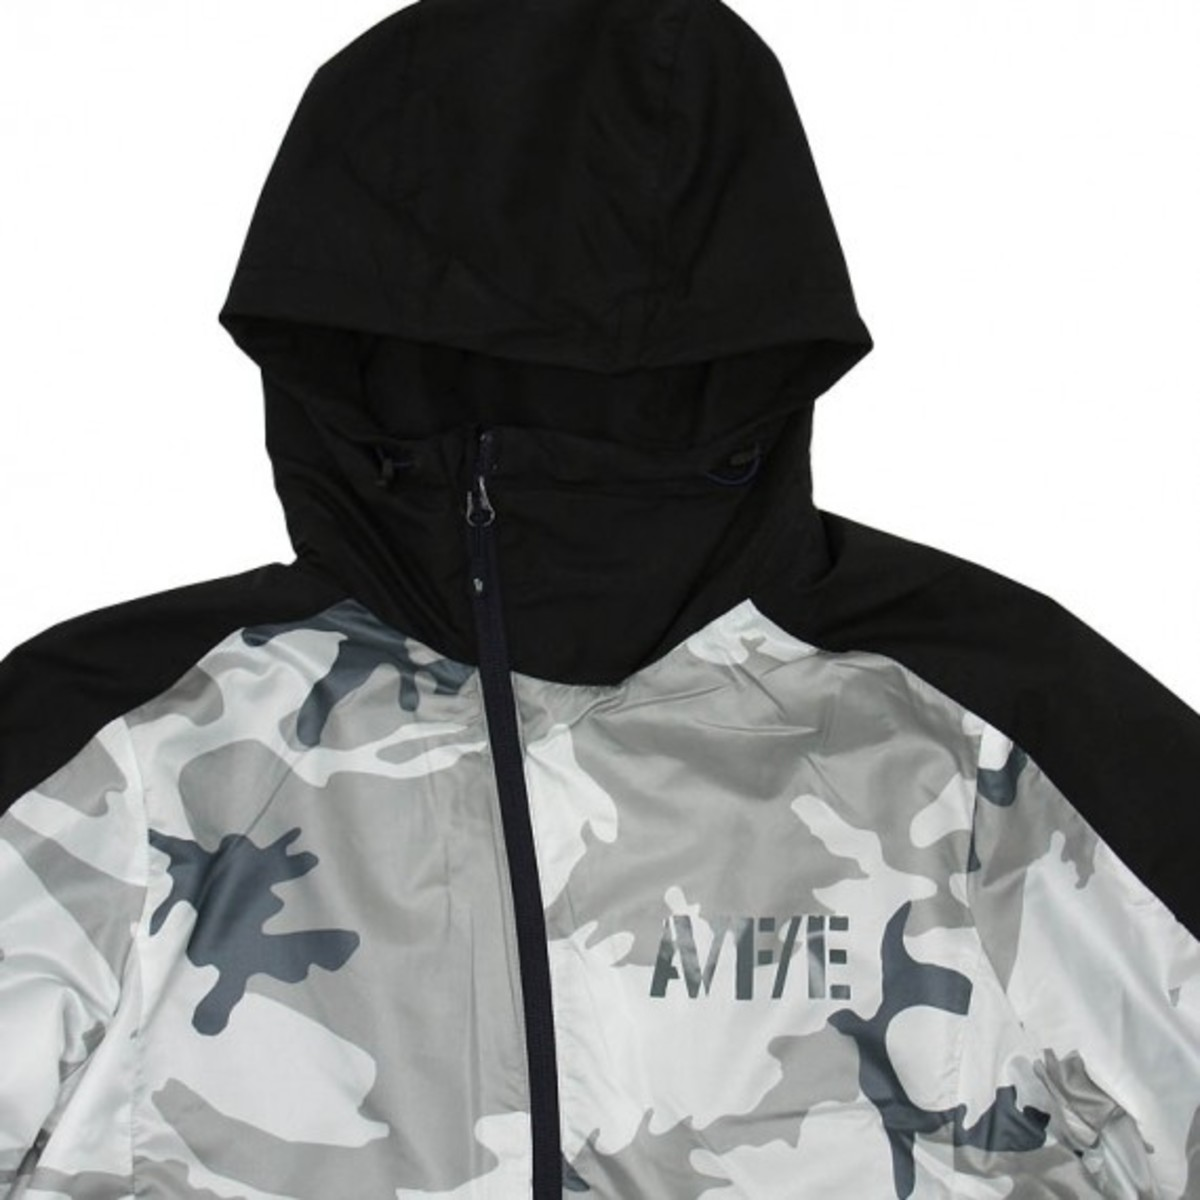 NSW AFE Slant Zip Jacket White 3